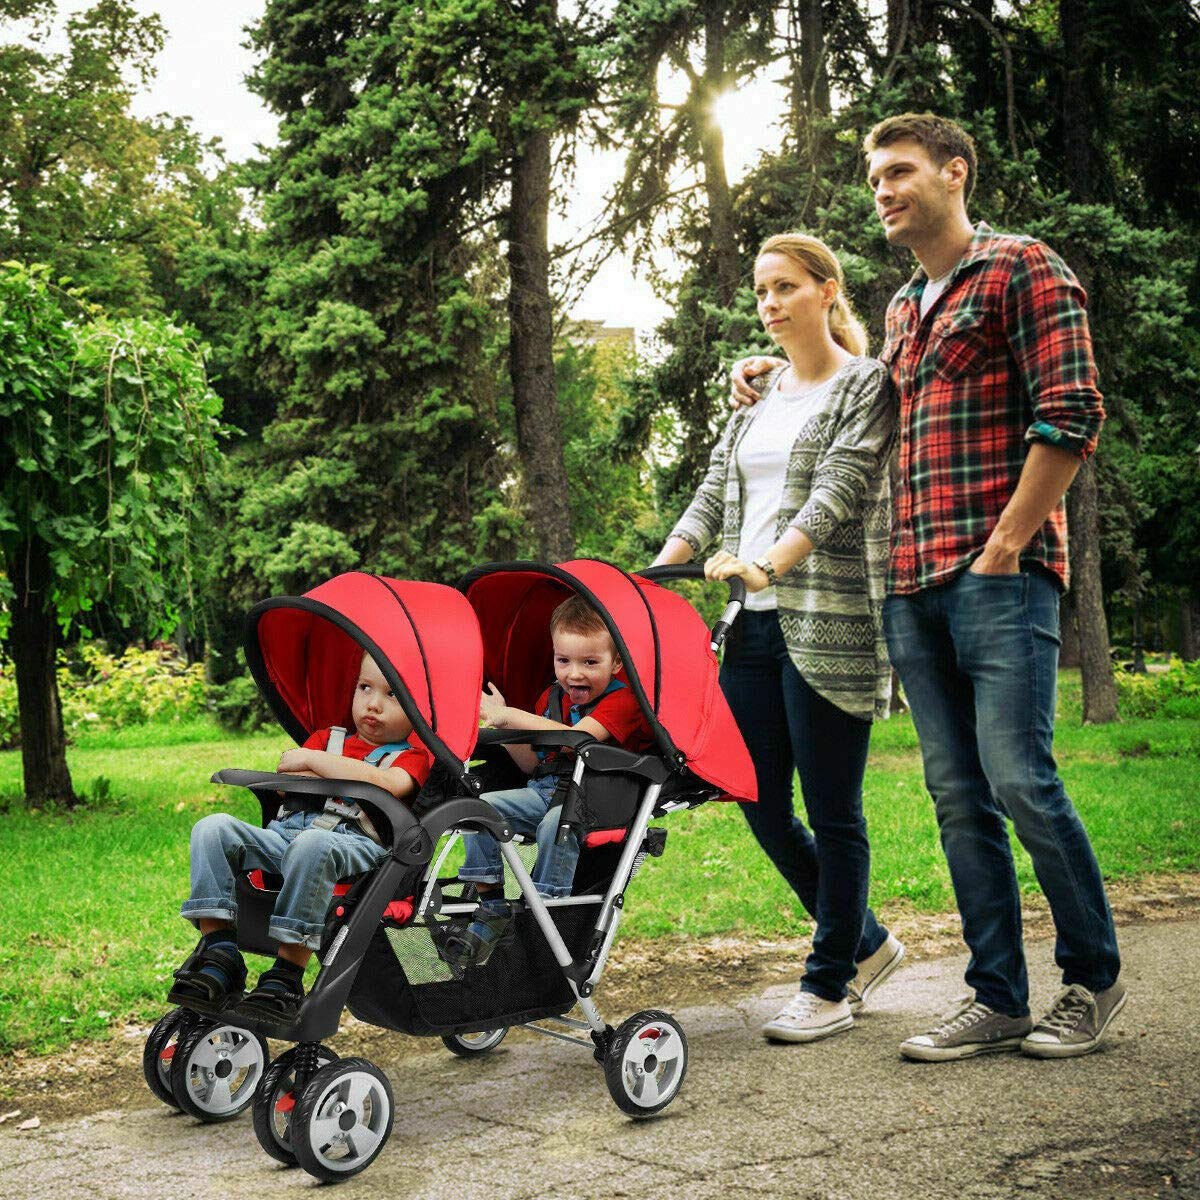 Cozinest Foldable Twin Baby Double Stroller Kids Jogger Travel Infant Pushchair Red by Cozinest (Image #2)